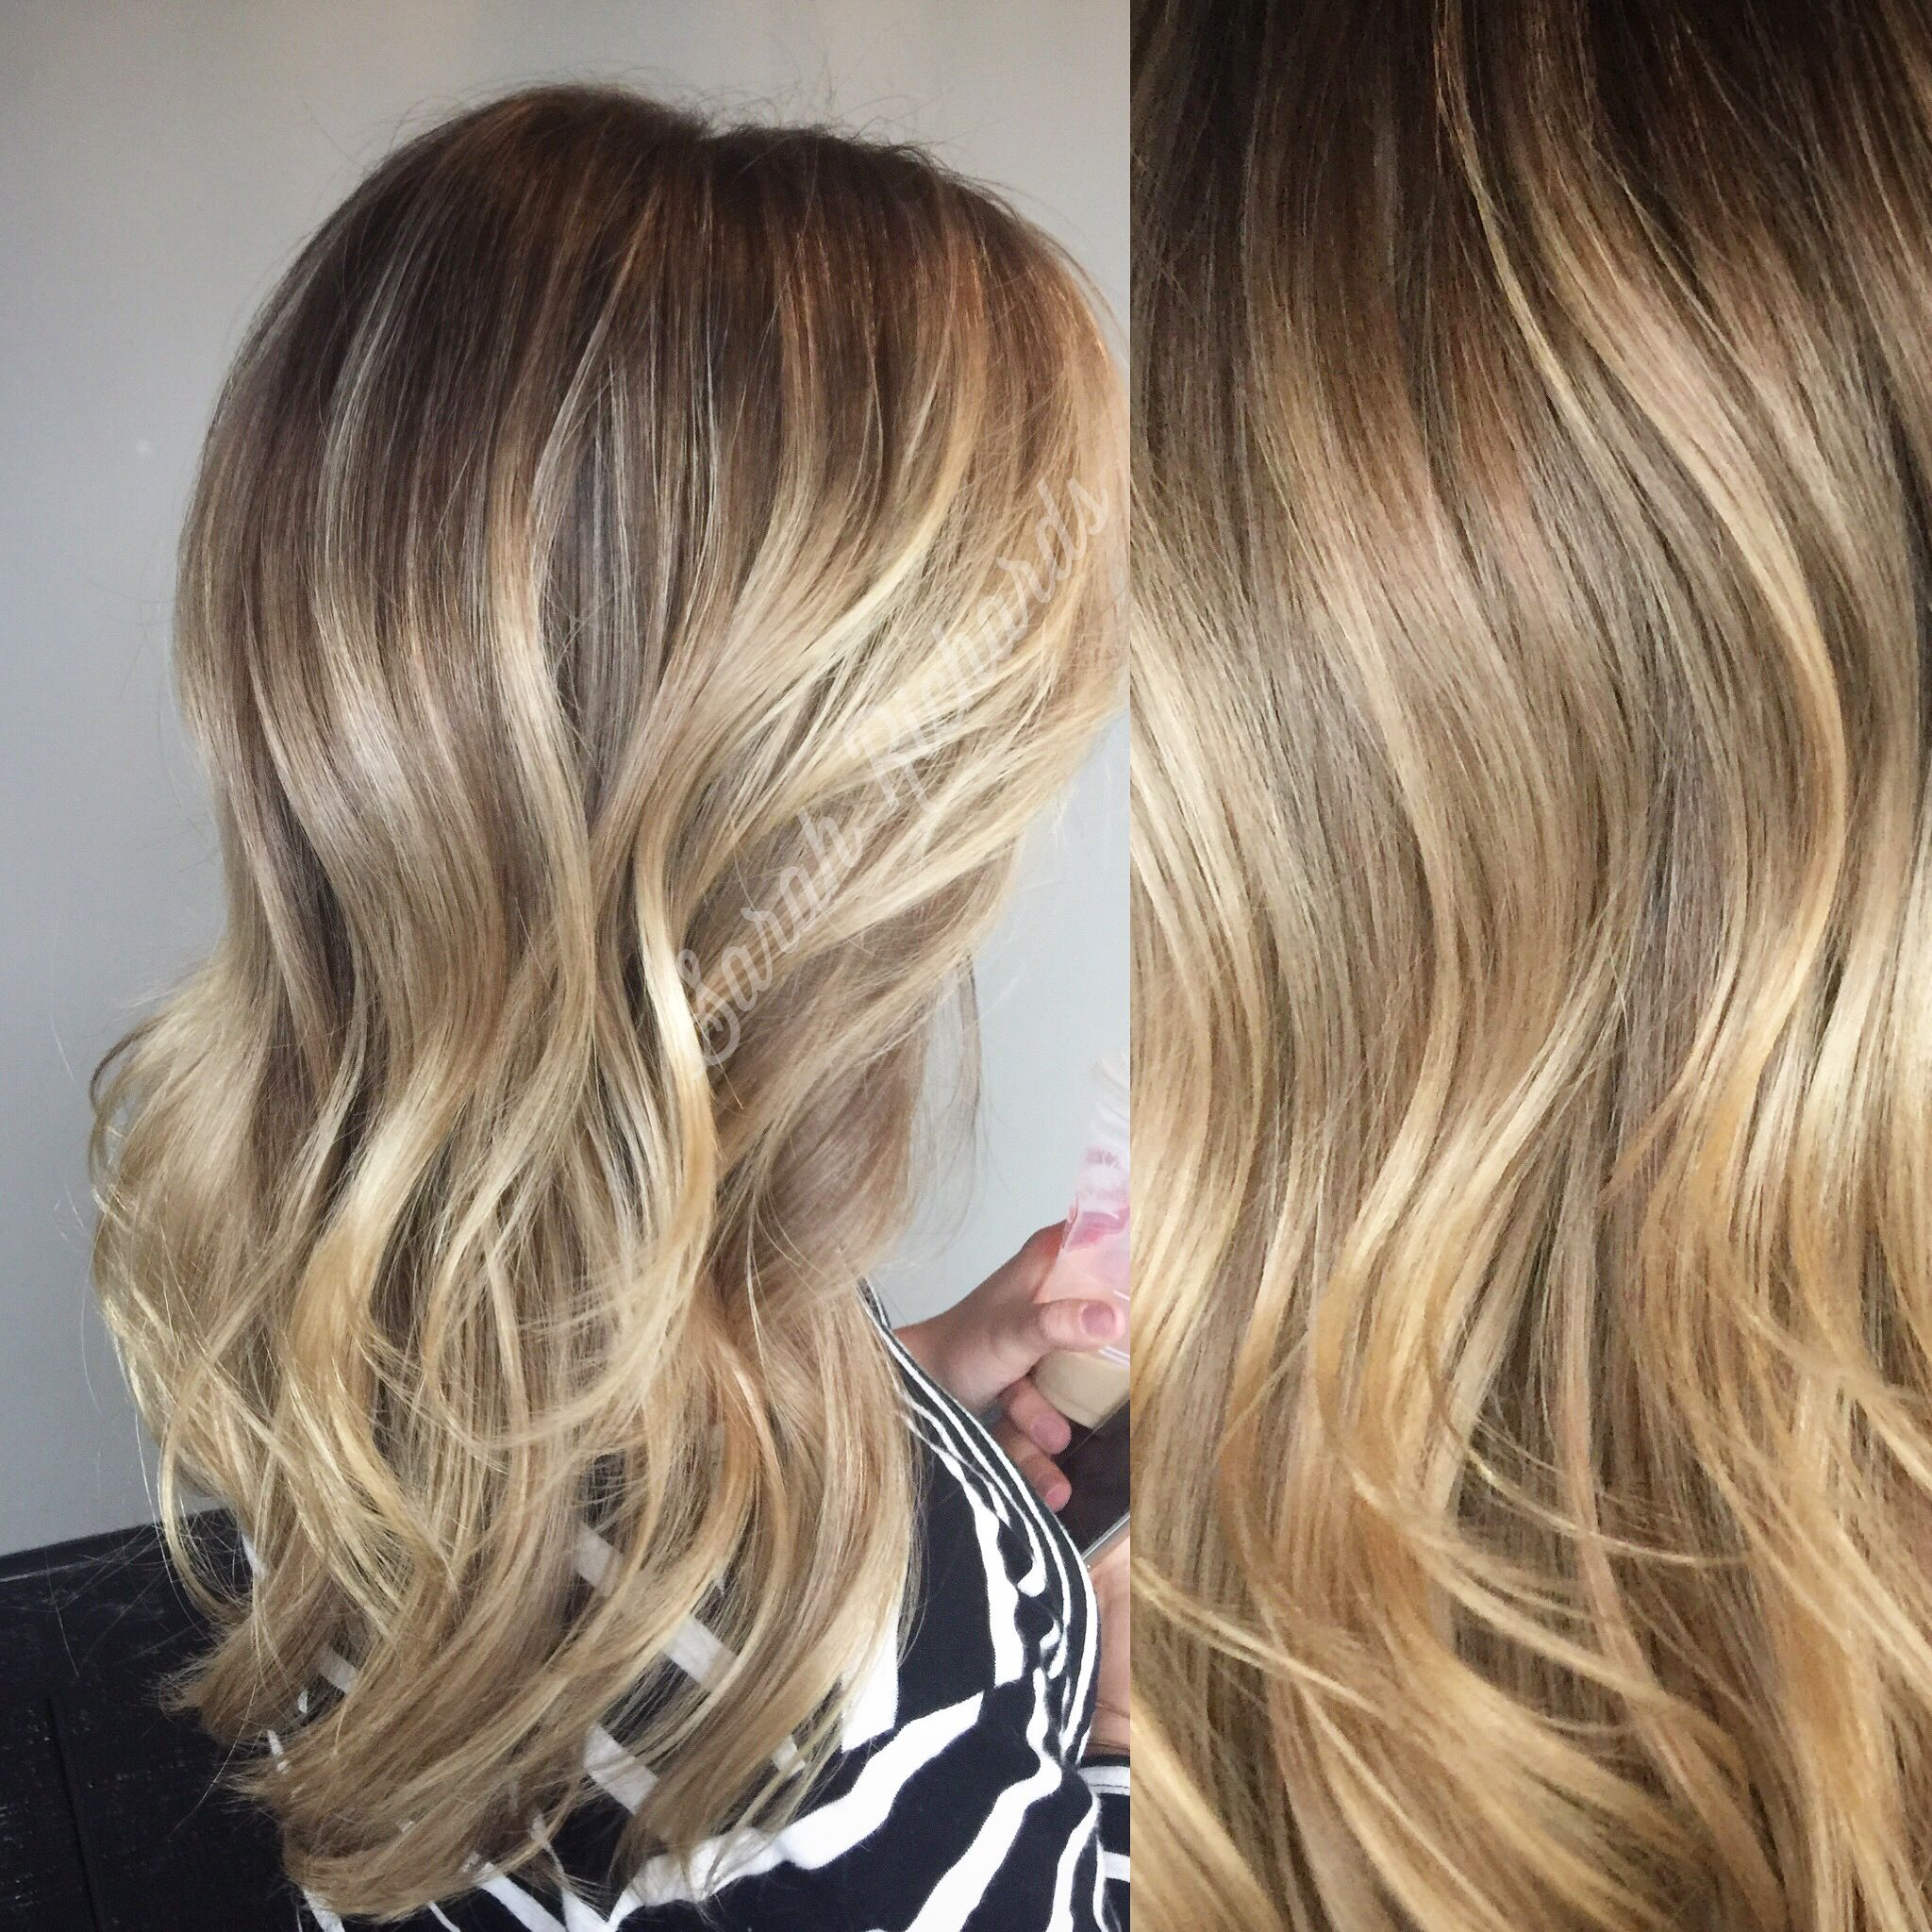 Winter Blonde Shades Eq Redken Color By Sarah Richards At Legal Hair And Day Spa Soft Warm Fall Honey